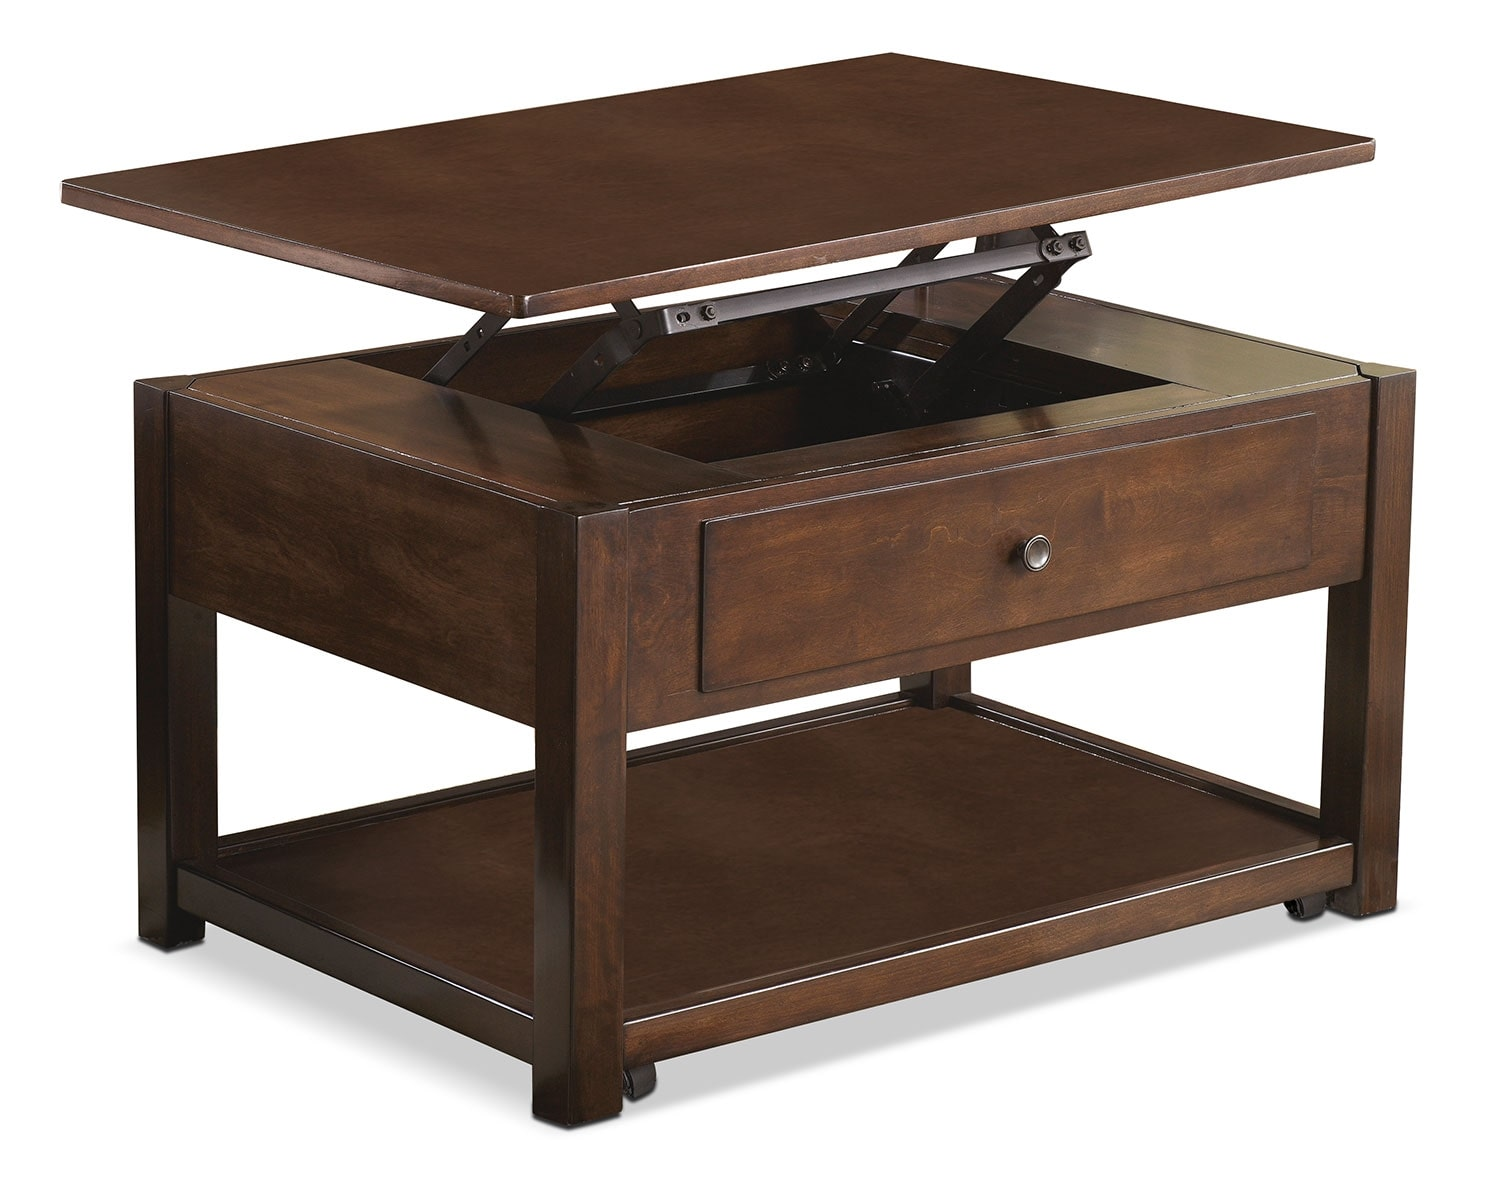 Marion Coffee Table with Lift-Top and Casters